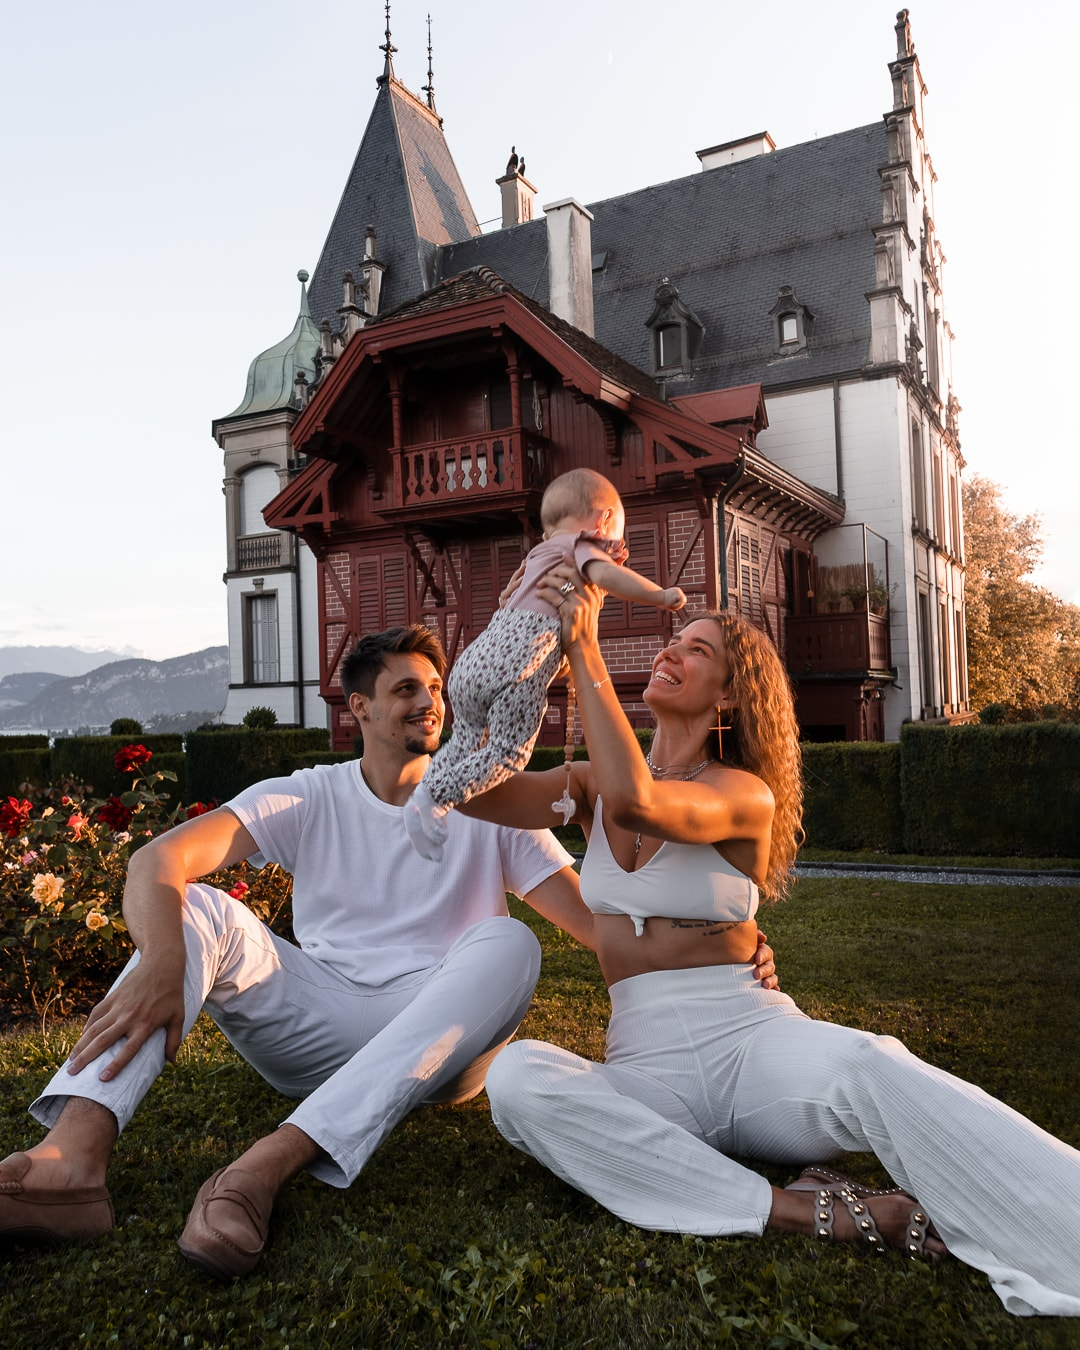 Family picture of Anja Zeidler, Milan Anicic and her child. They are sitting in front of the famous Meggenhorn Castle and Anja holds her child in the air.